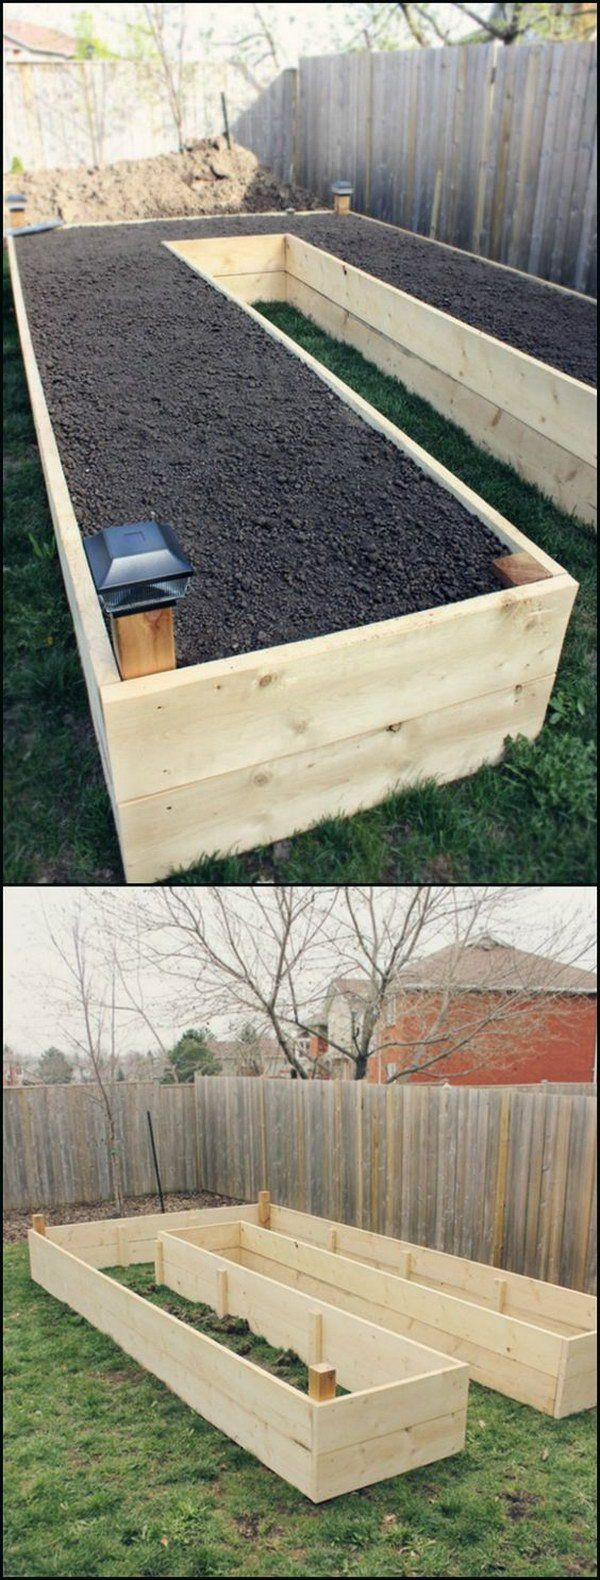 How to Make a U Shaped Raised Garden Bed.